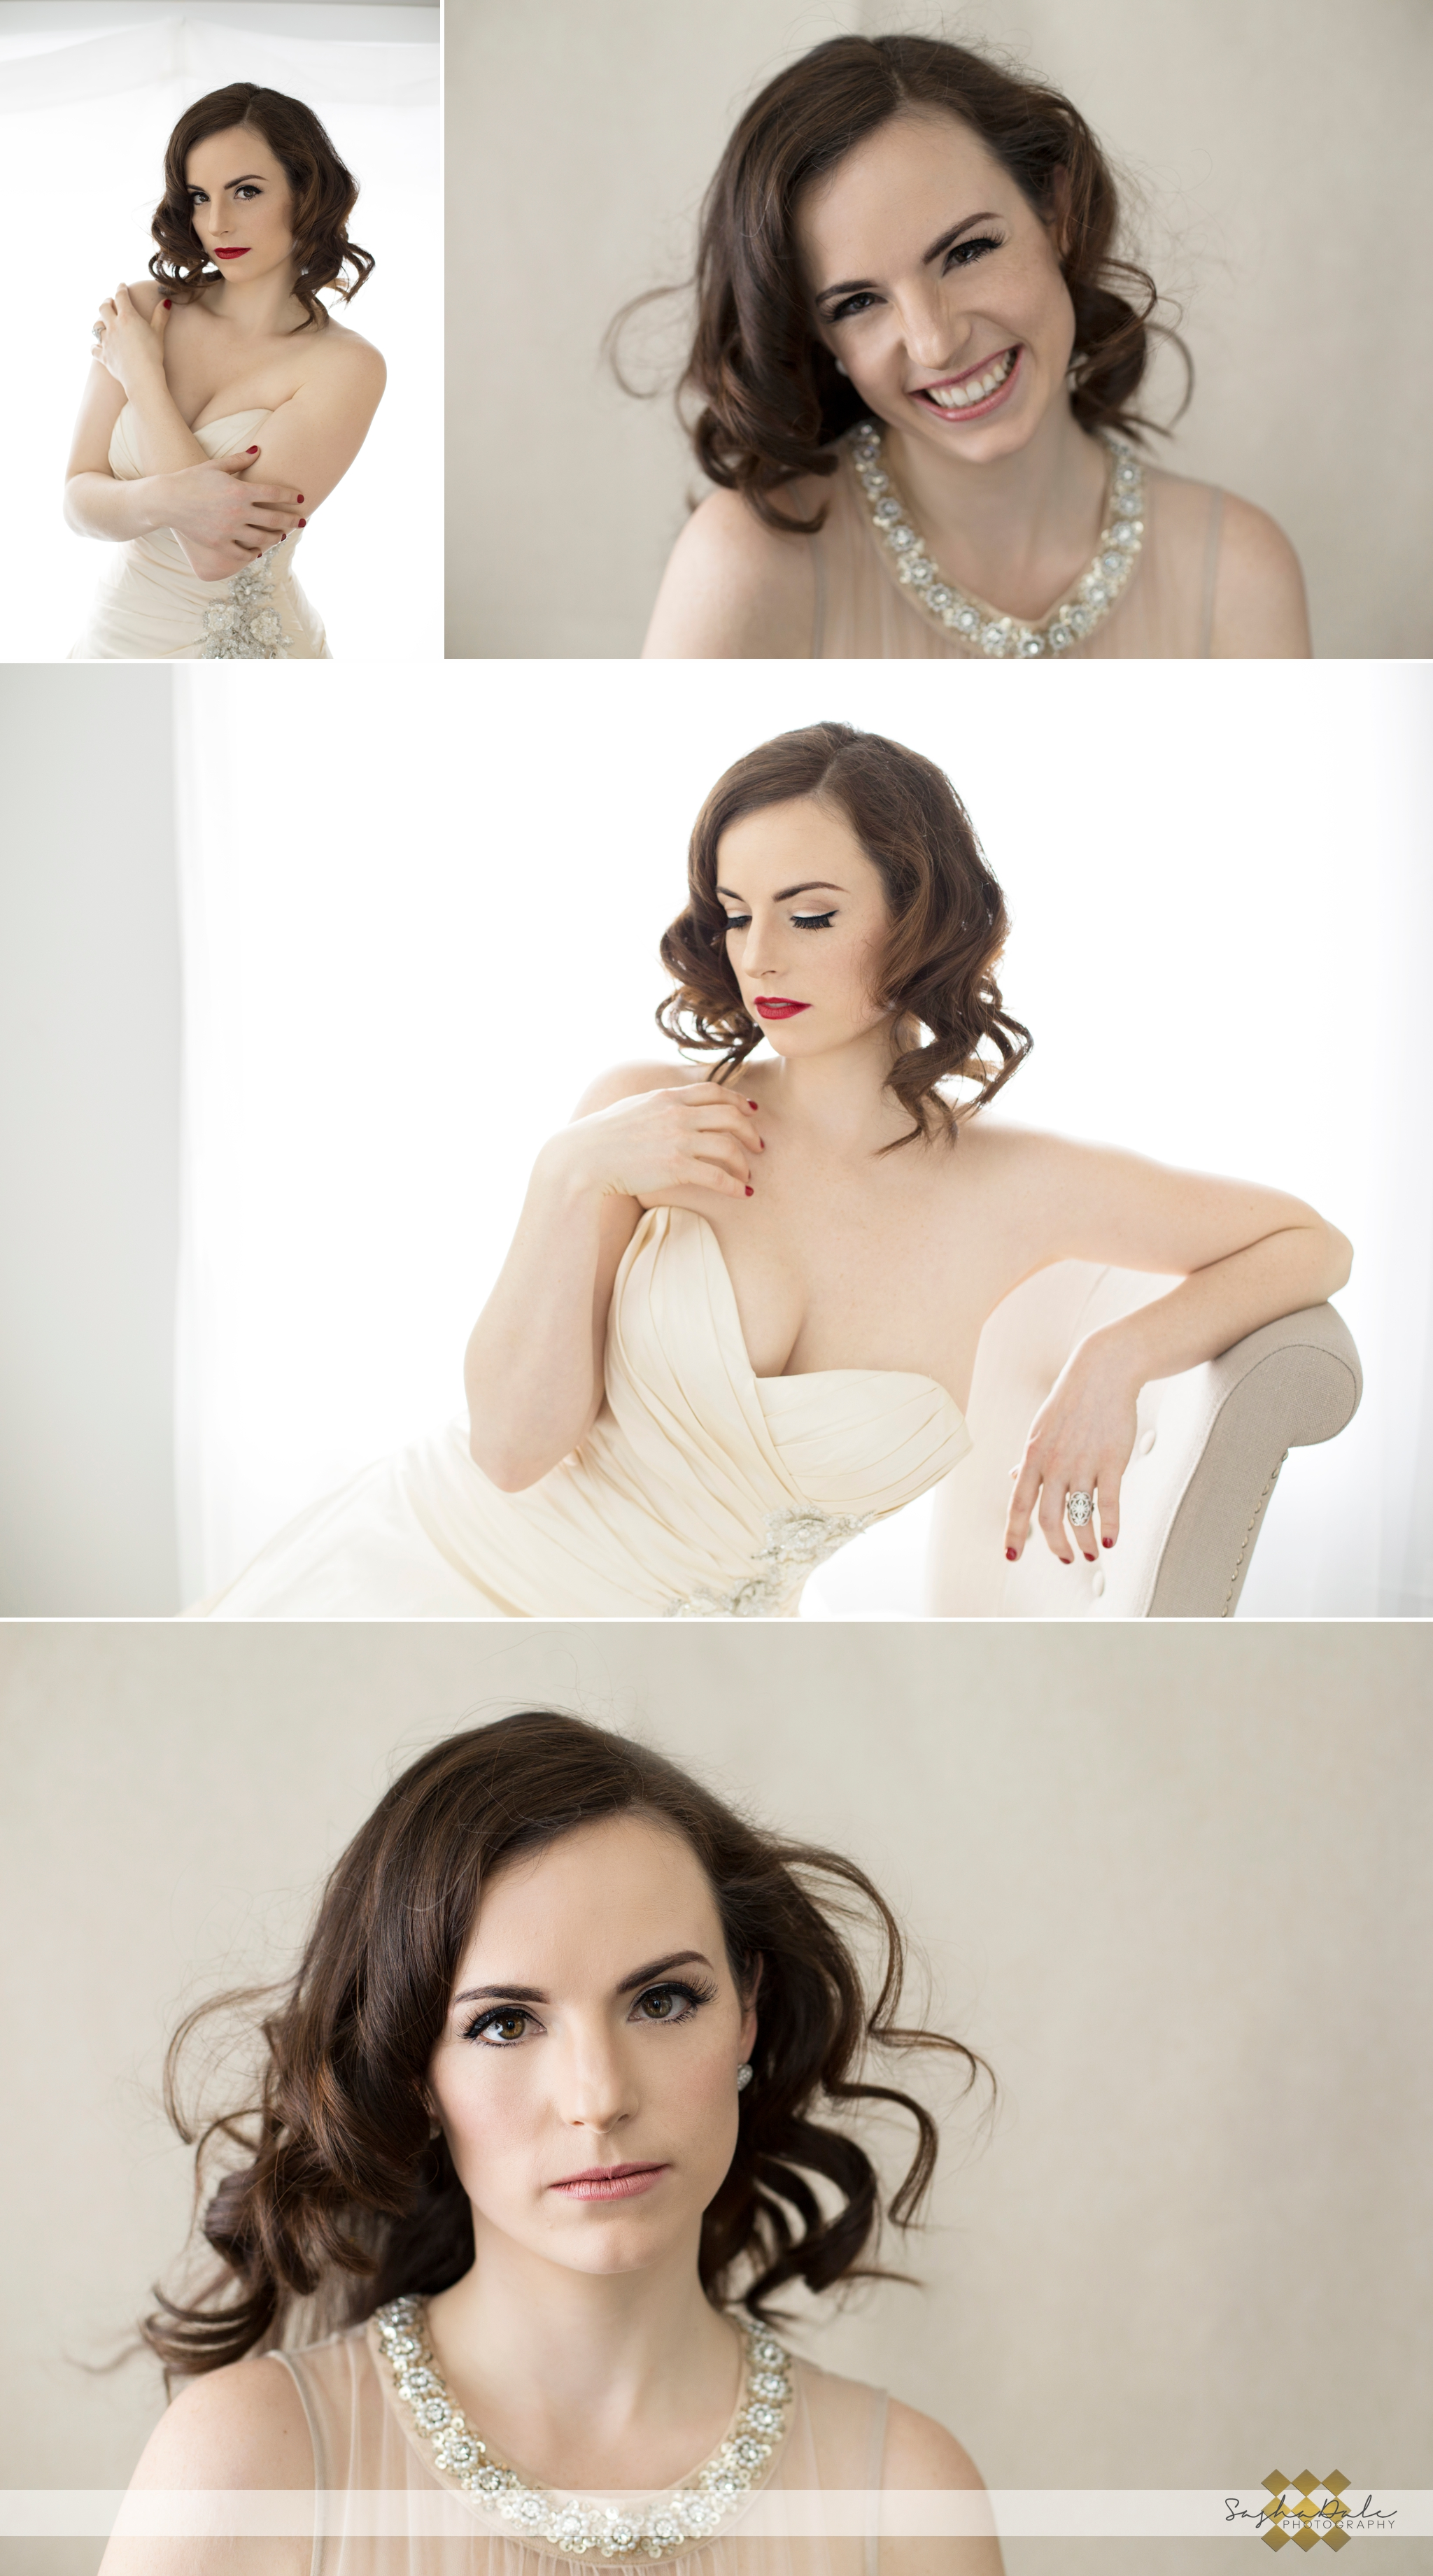 ct glamour photography, glamour portaits, bridal photography, bride, white dress, backlighting, hair and makeup